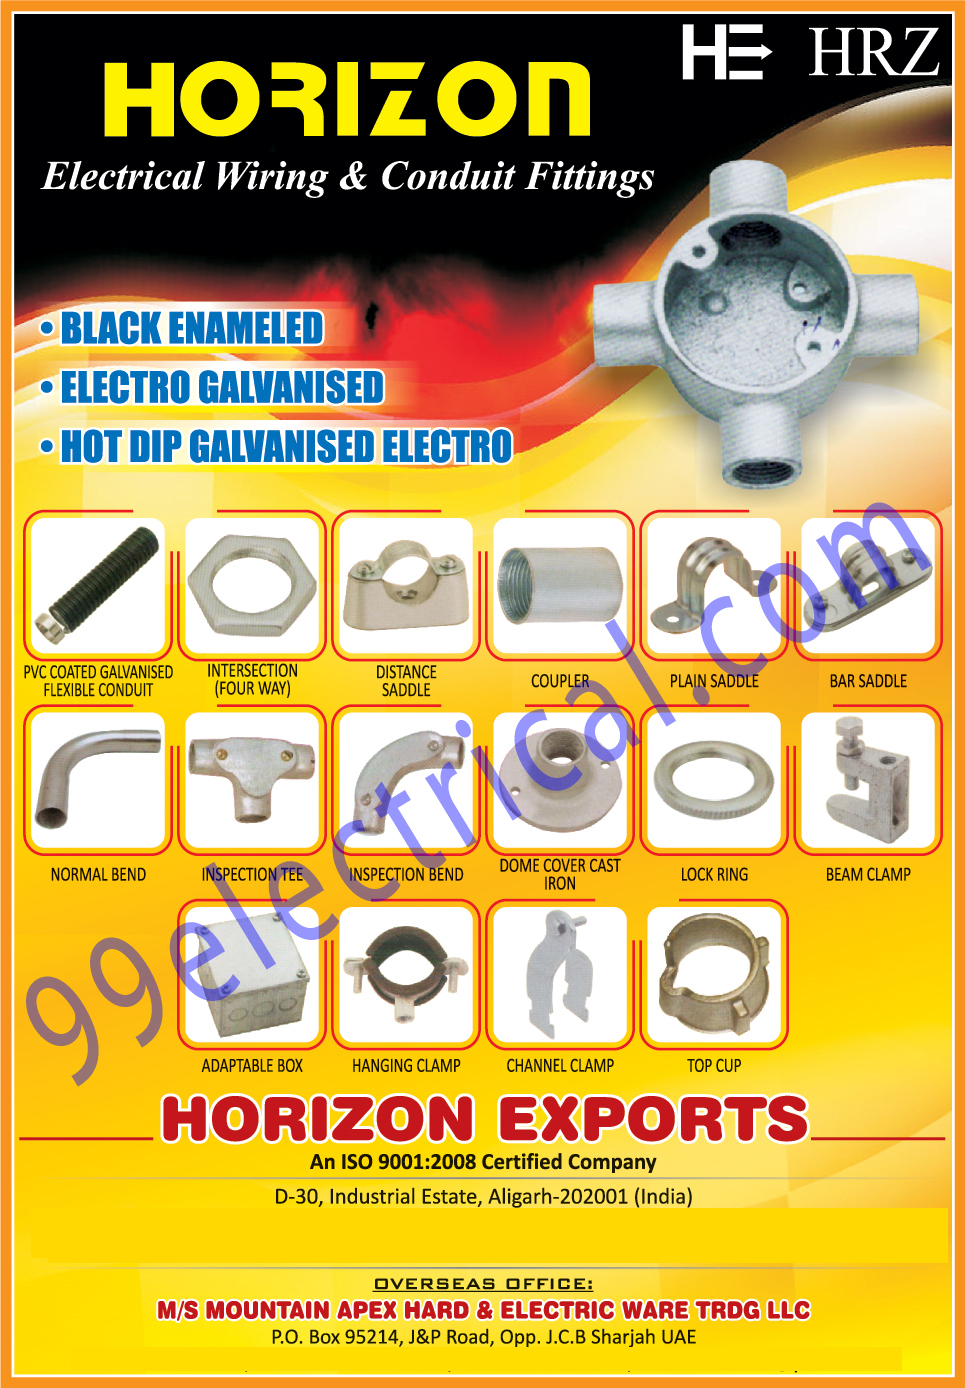 Electrical Wirings, Conduit Fittings, Normal Bends, Inspection Tee, Inspection Bends, Dome Cover Cast Irons, Lock Rings, Beam Clamps, Channel Clamps, Top Cups, Hanging Clamps, Adaptable Boxes, Bar Saddles, Plain Saddles, Couplers, Distance Saddles, Intersections, PVC Coated Galvanised Flexible Conduits, Electrical Parts, Electrical Products, Electro Galvanised, Hot Dip Galvanized Electro, Junction Box, Conduit Accessories, GI Boxes, Brass Accessories, Earthing Accessories, Clamps, Cable Lugs, Fastners, Tools, Scaffolding, Saddle